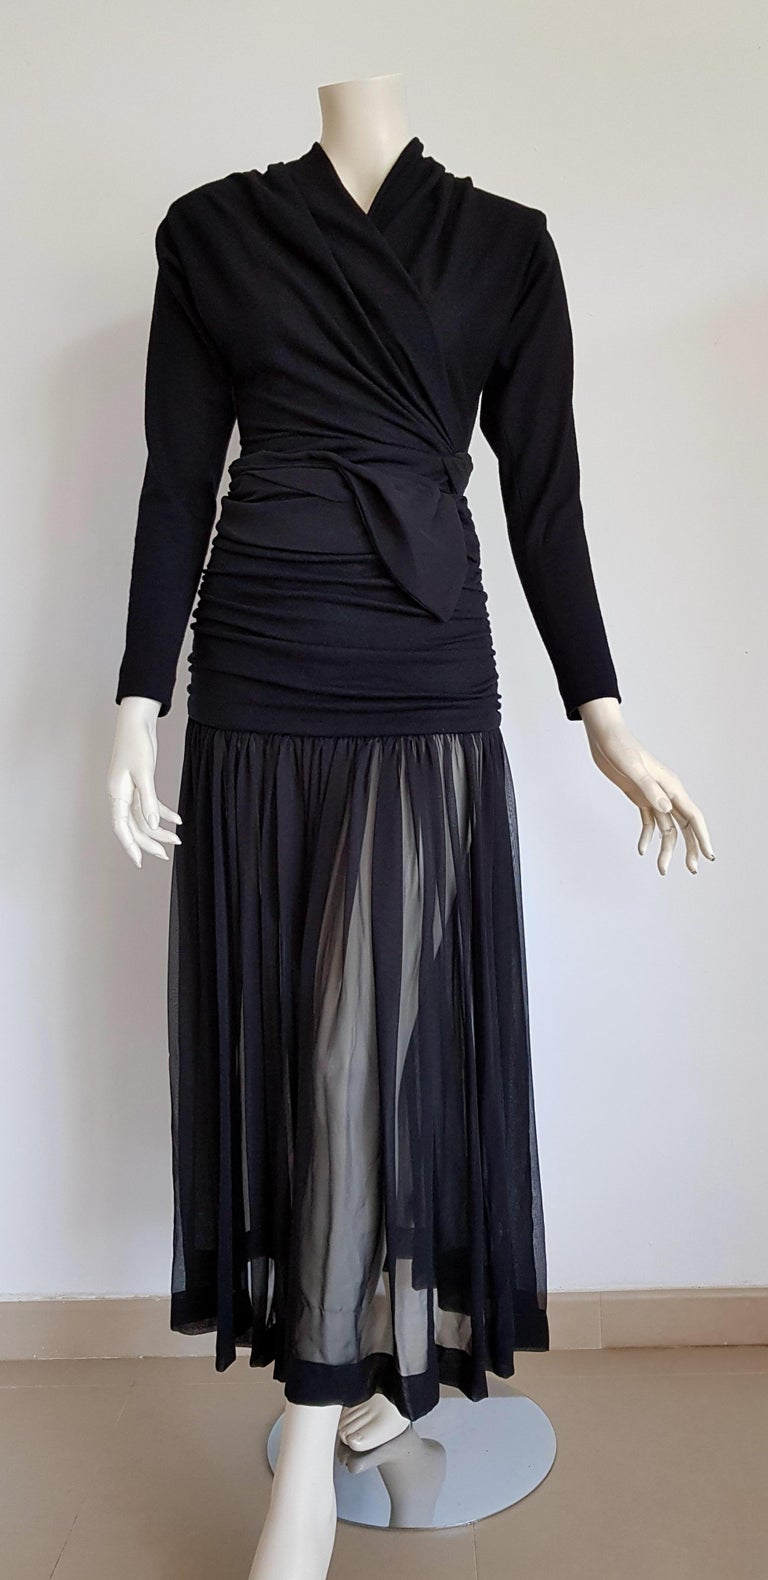 Isabelle ALLARD Paris, High wool waistband, Chiffon skirt, Body with sleeves, Black ensemble dress - Unworn, New. Isabelle ALLARD is a fashion designer that created only haute couture and selling to international customers too. It did not produce